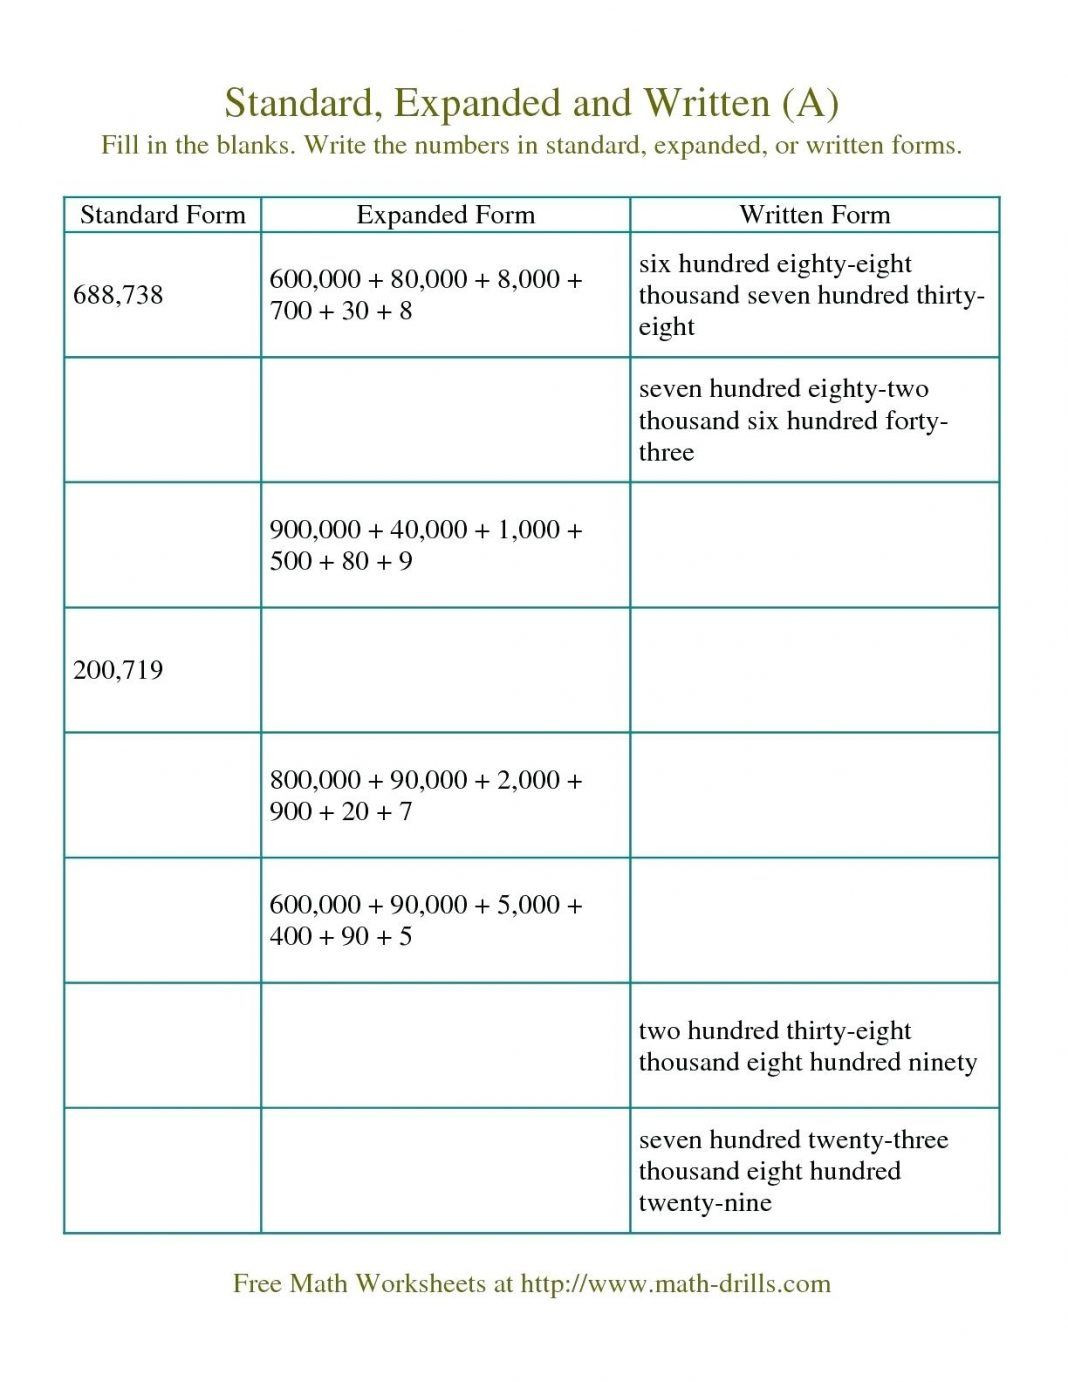 5th Grade Expanded form Worksheets 40 Clever 1st Grade Math Worksheets Design Bacamajalah In